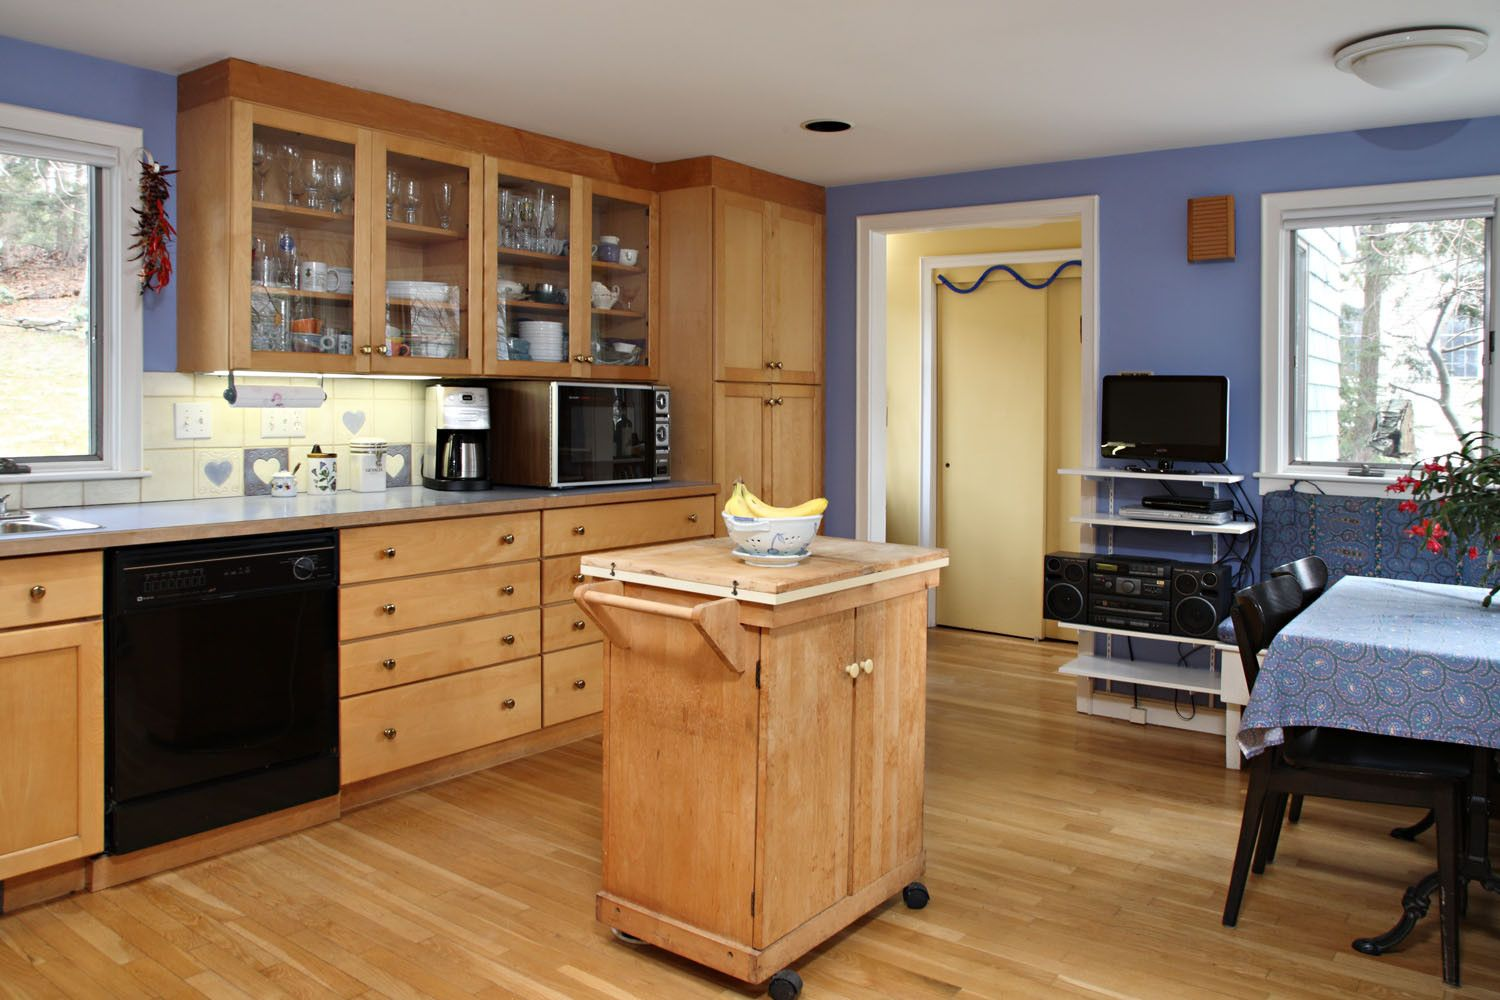 77 Natural Wood Color Kitchen Cabinets Kitchen Decor Theme Ideas Check More At Http Www Planetg Kitchen Design Decor Kitchen Cabinet Design Kitchen Design